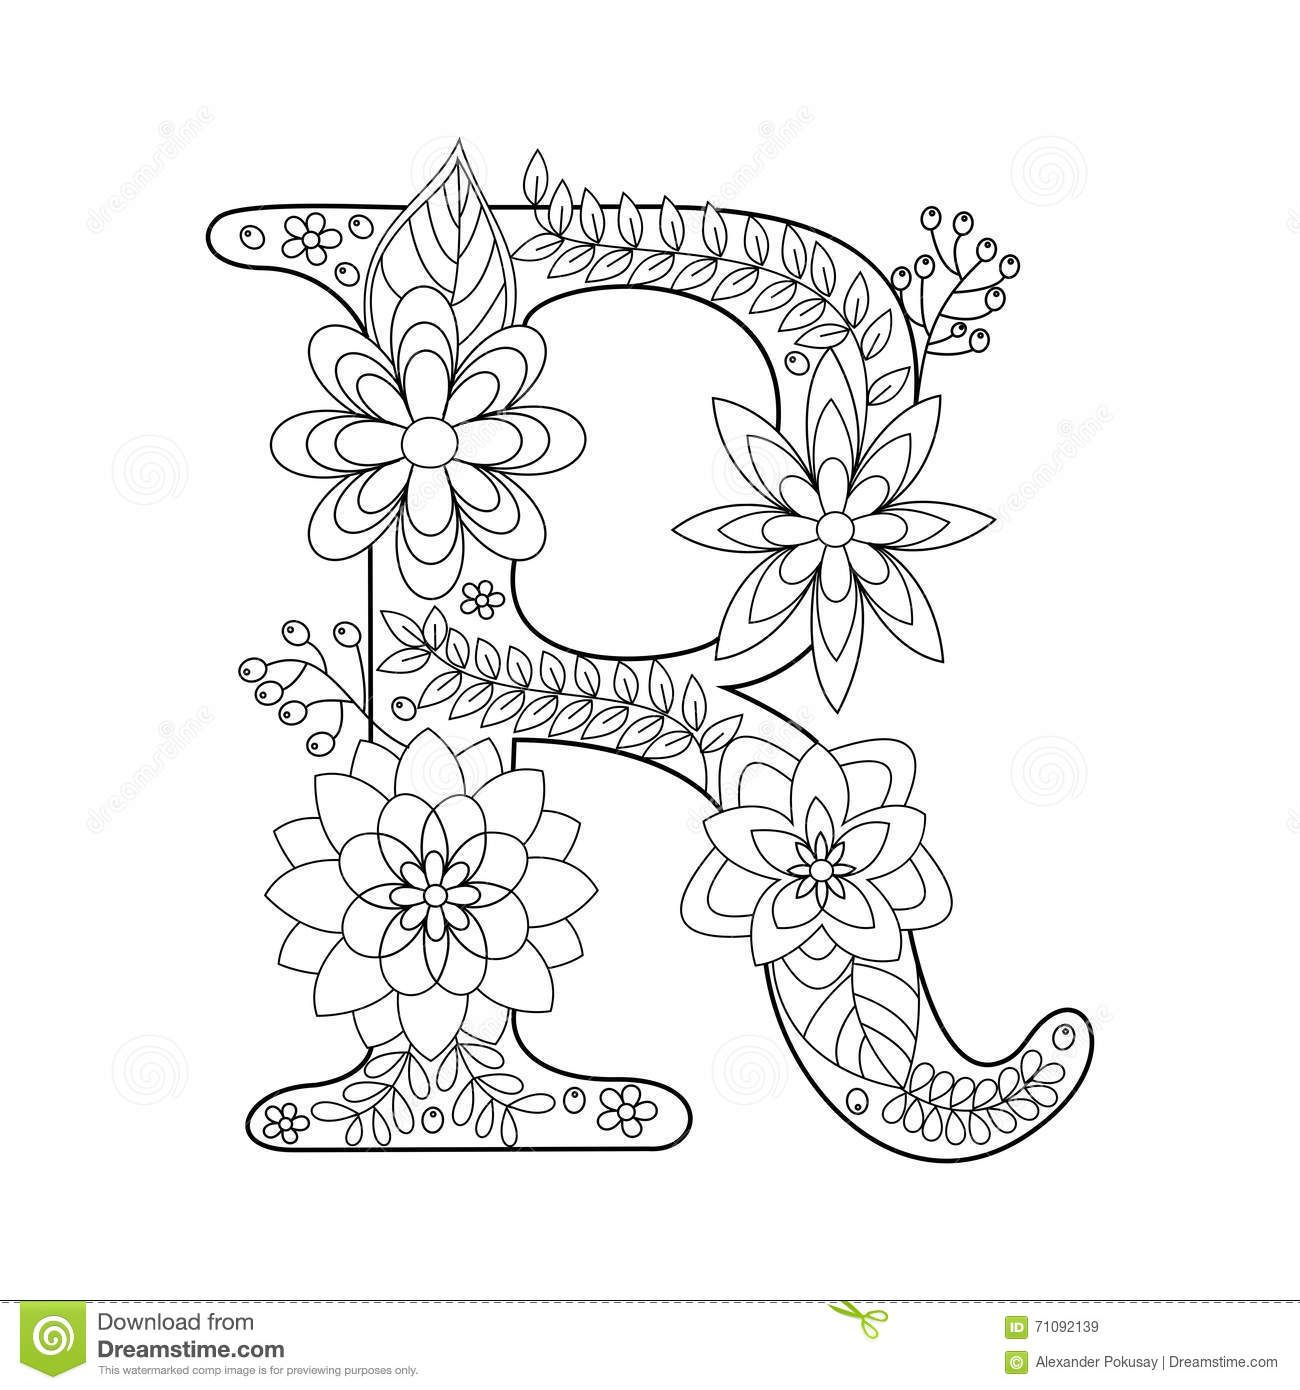 Letter R Coloring Book For Adults Vector Stock Vector Illustration Of Element Fabric 71092139 Alphabet Coloring Pages Coloring Pages Coloring Books